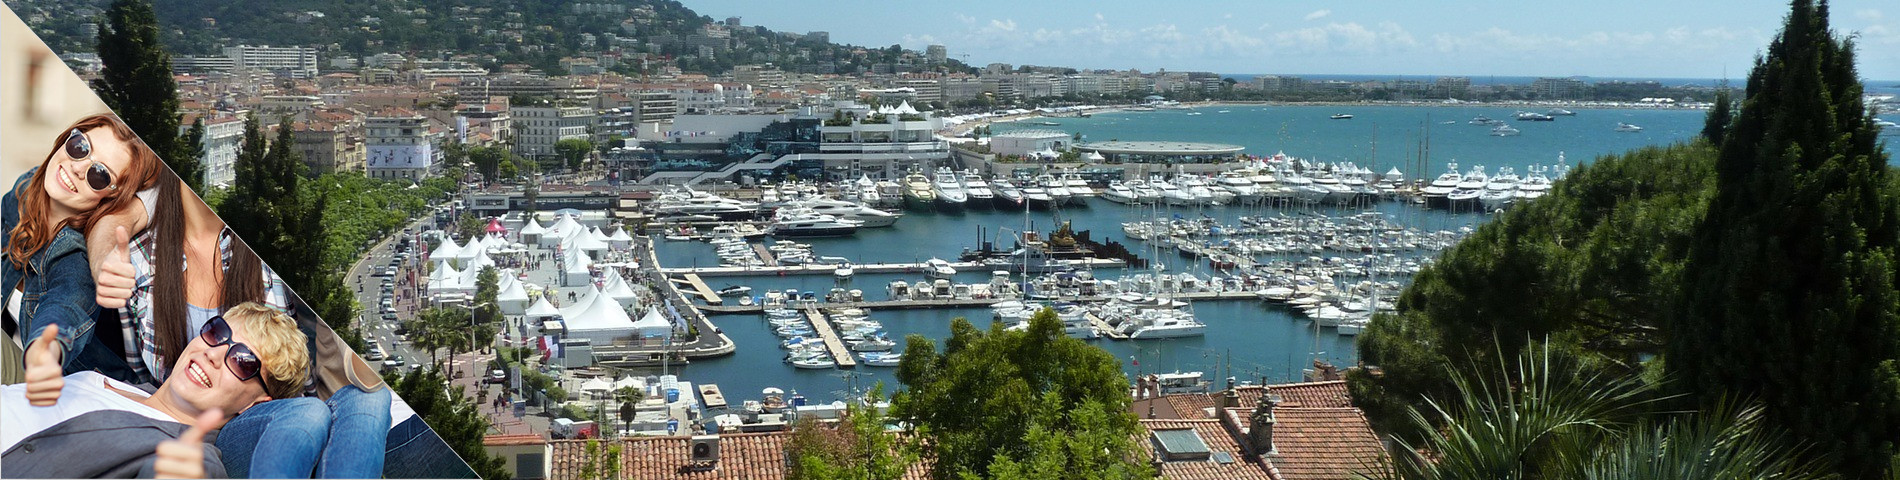 Cannes - School Trips / Groups